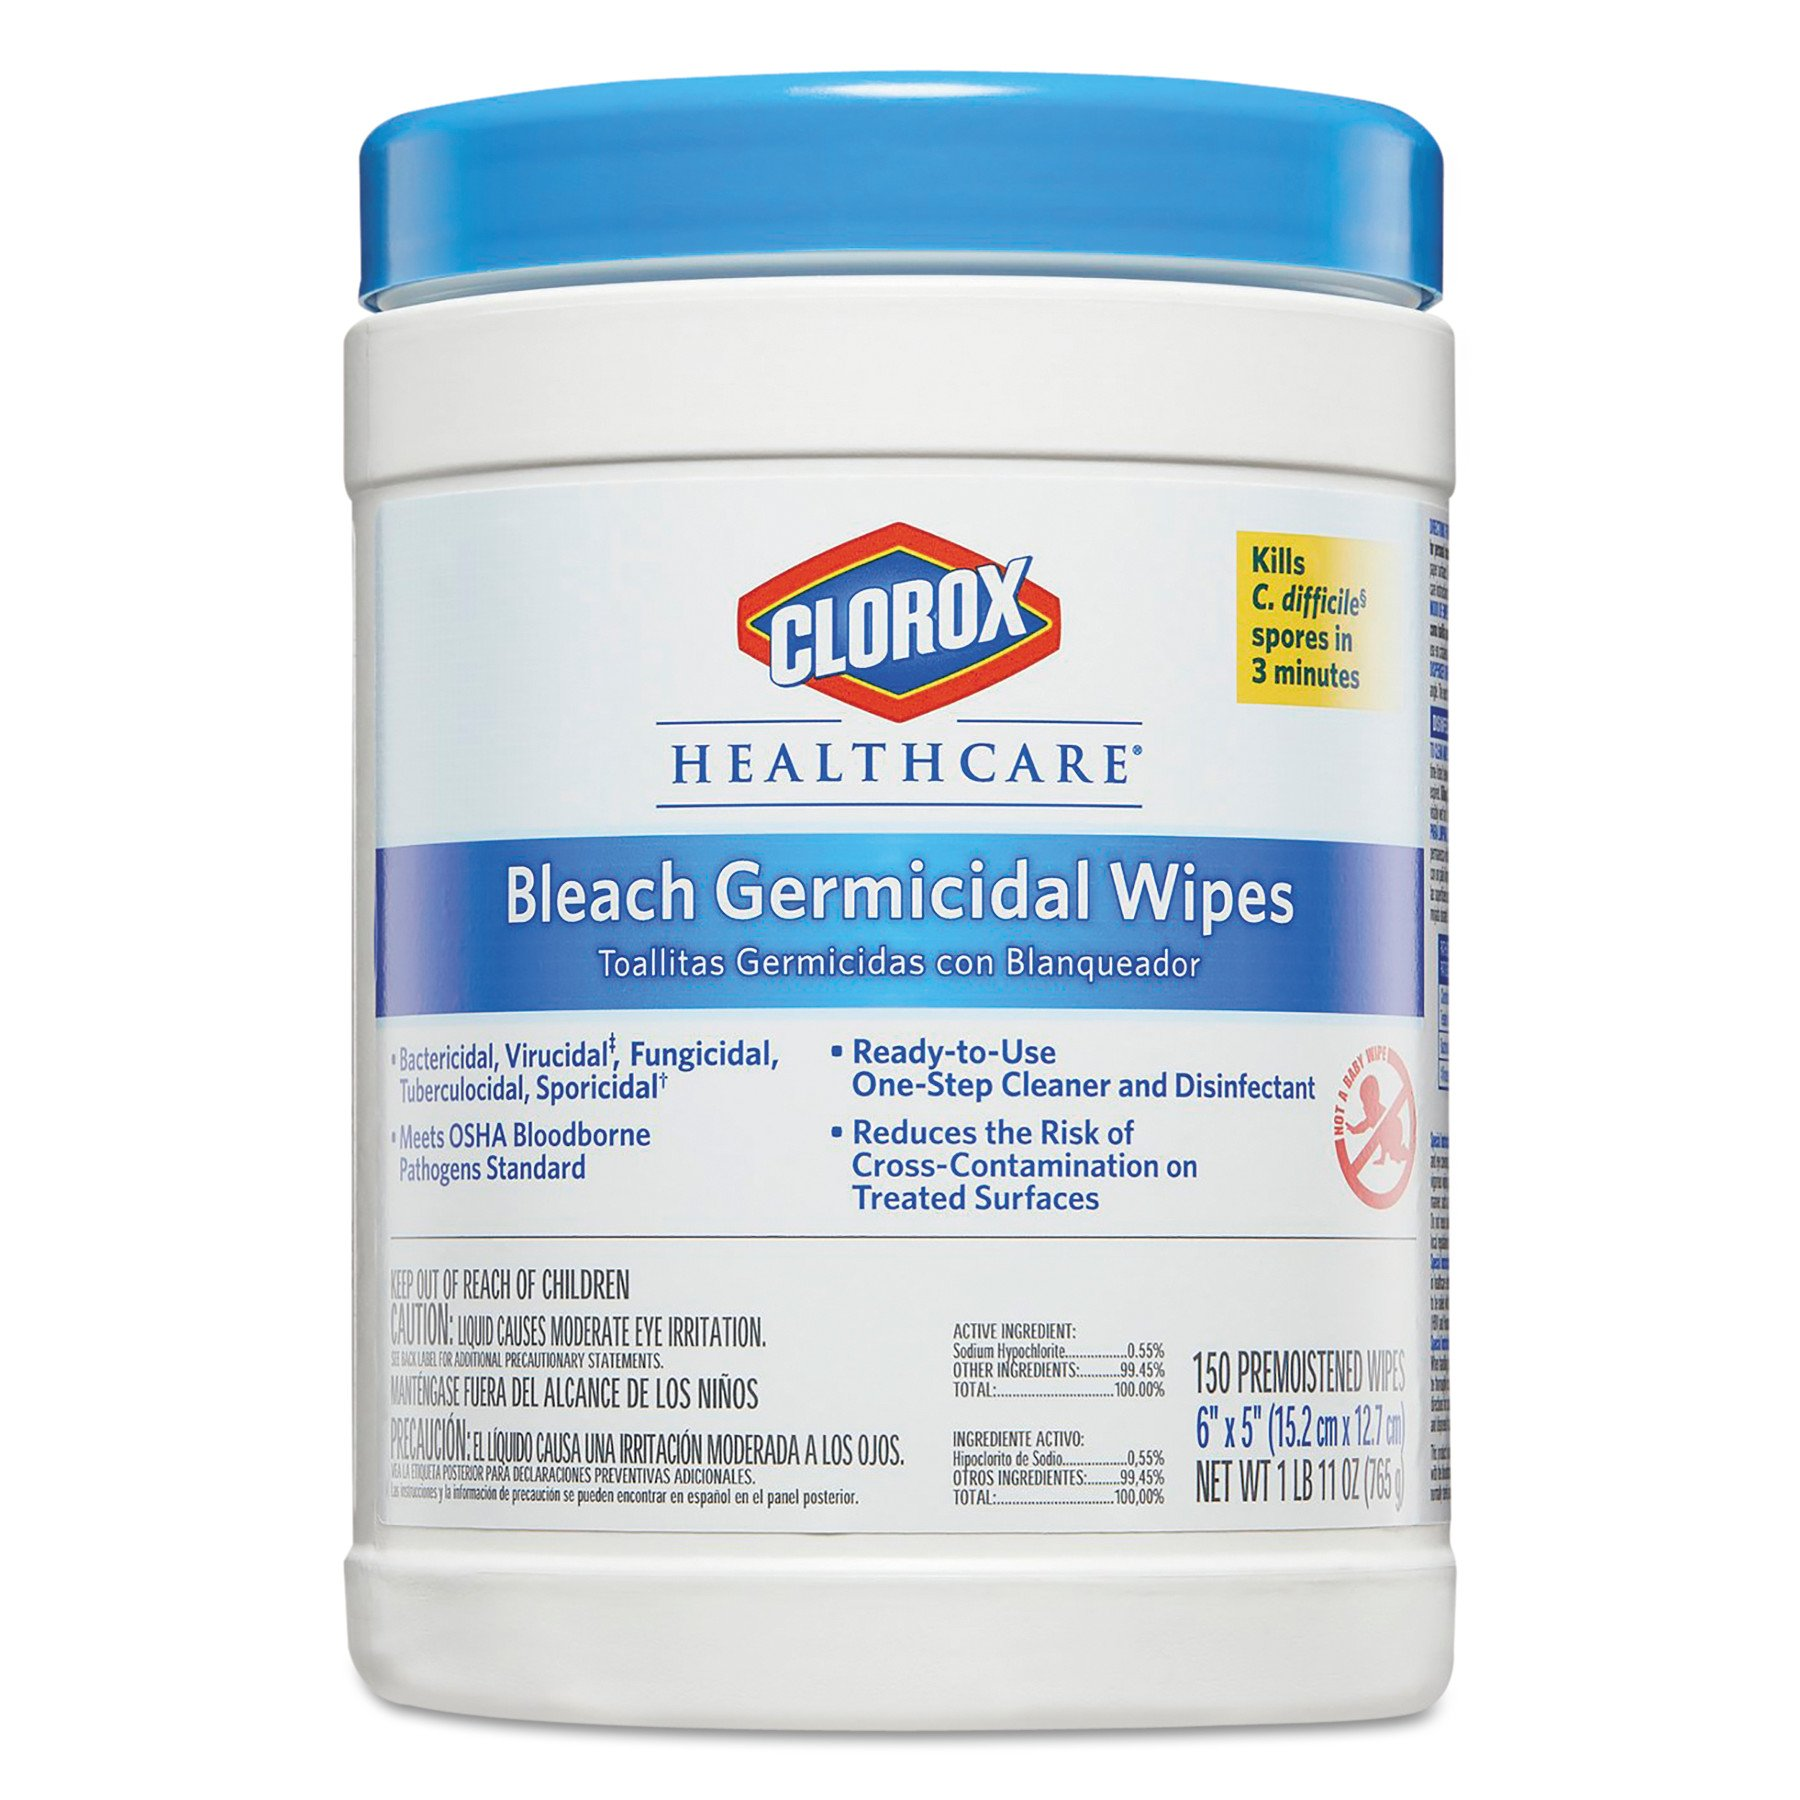 Clorox Healthcare 30577CT Bleach Germicidal Wipes, 6 x 5, Unscented, 150 per Canister - 1 EACH